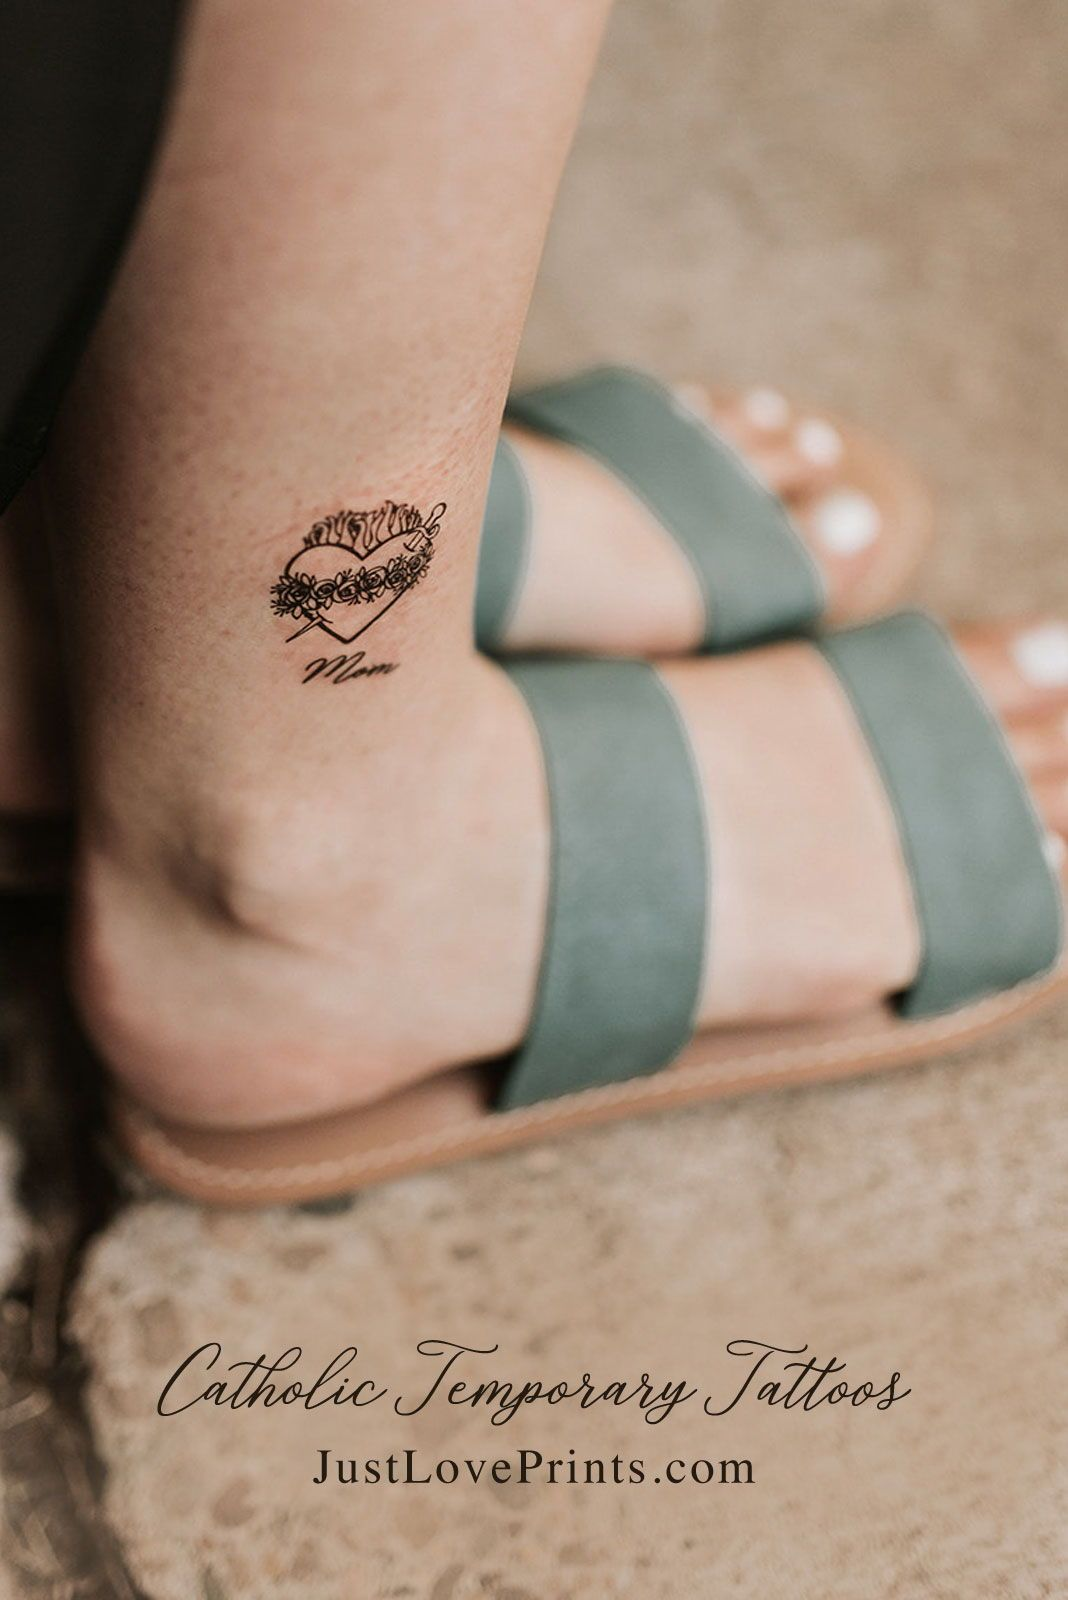 36+ Stunning Spiritual small tattoos with big meanings ideas in 2021